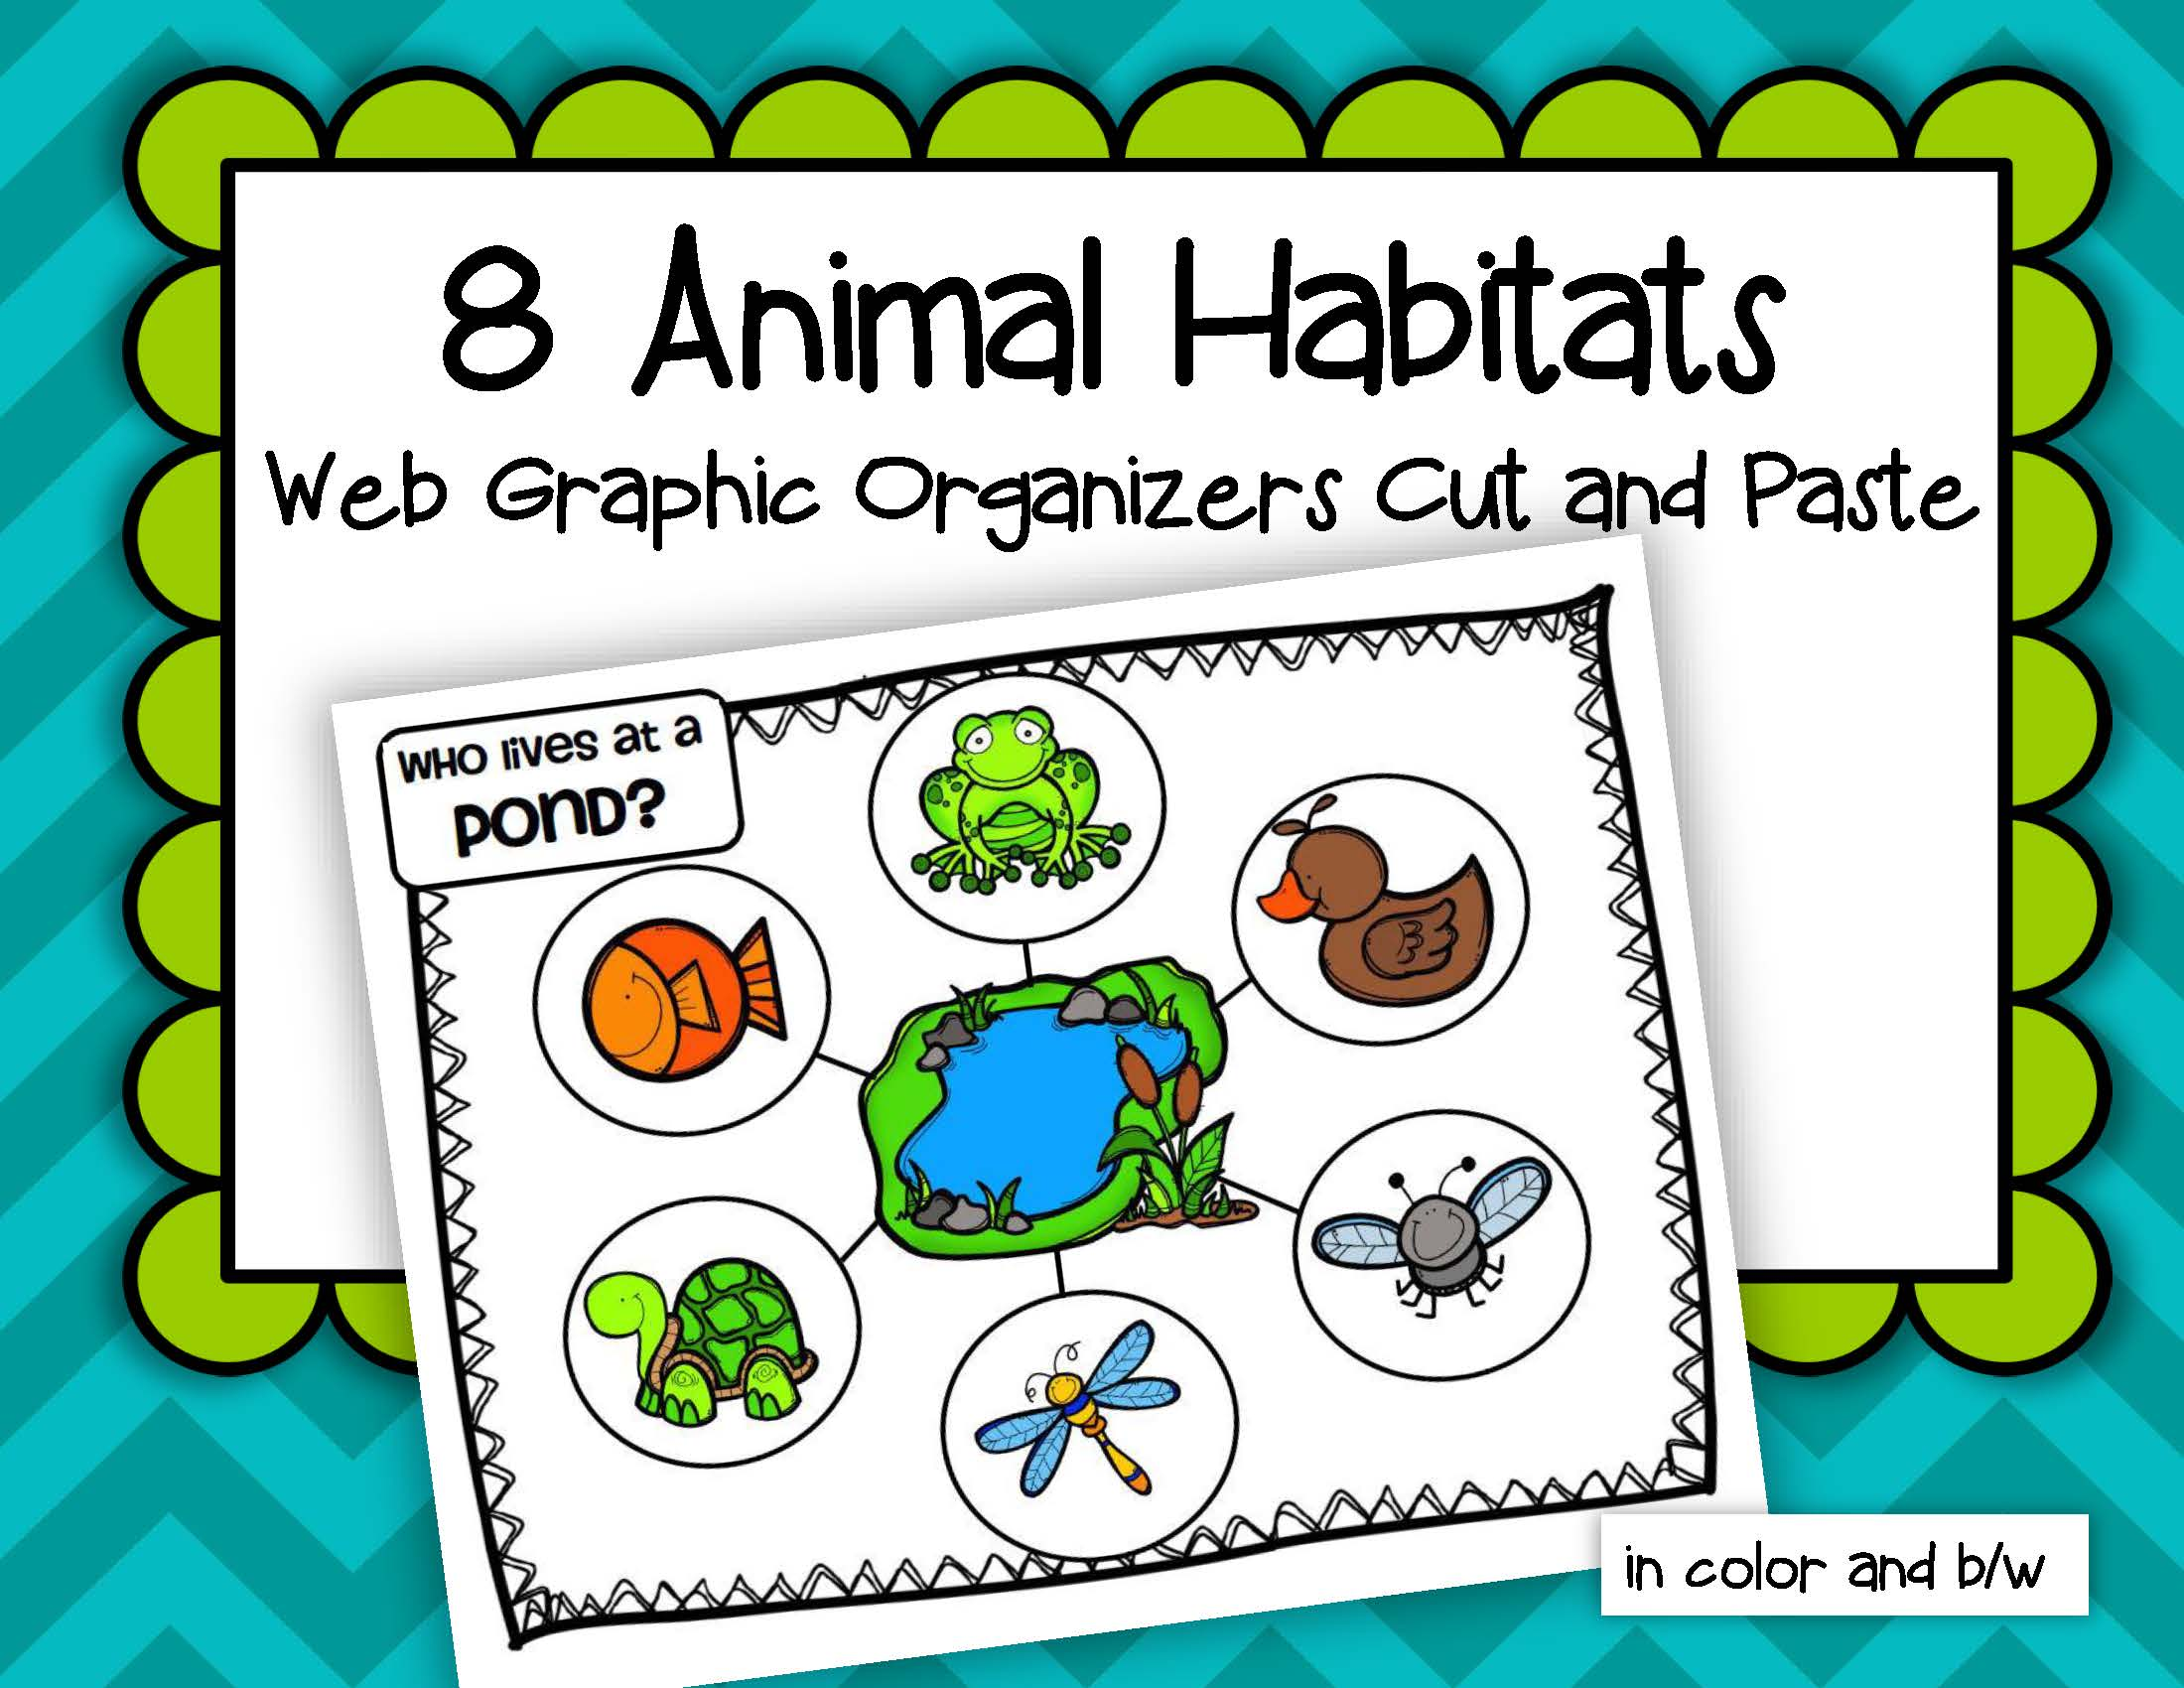 Animals Habitats Web Graphic Organizers Cut And Paste